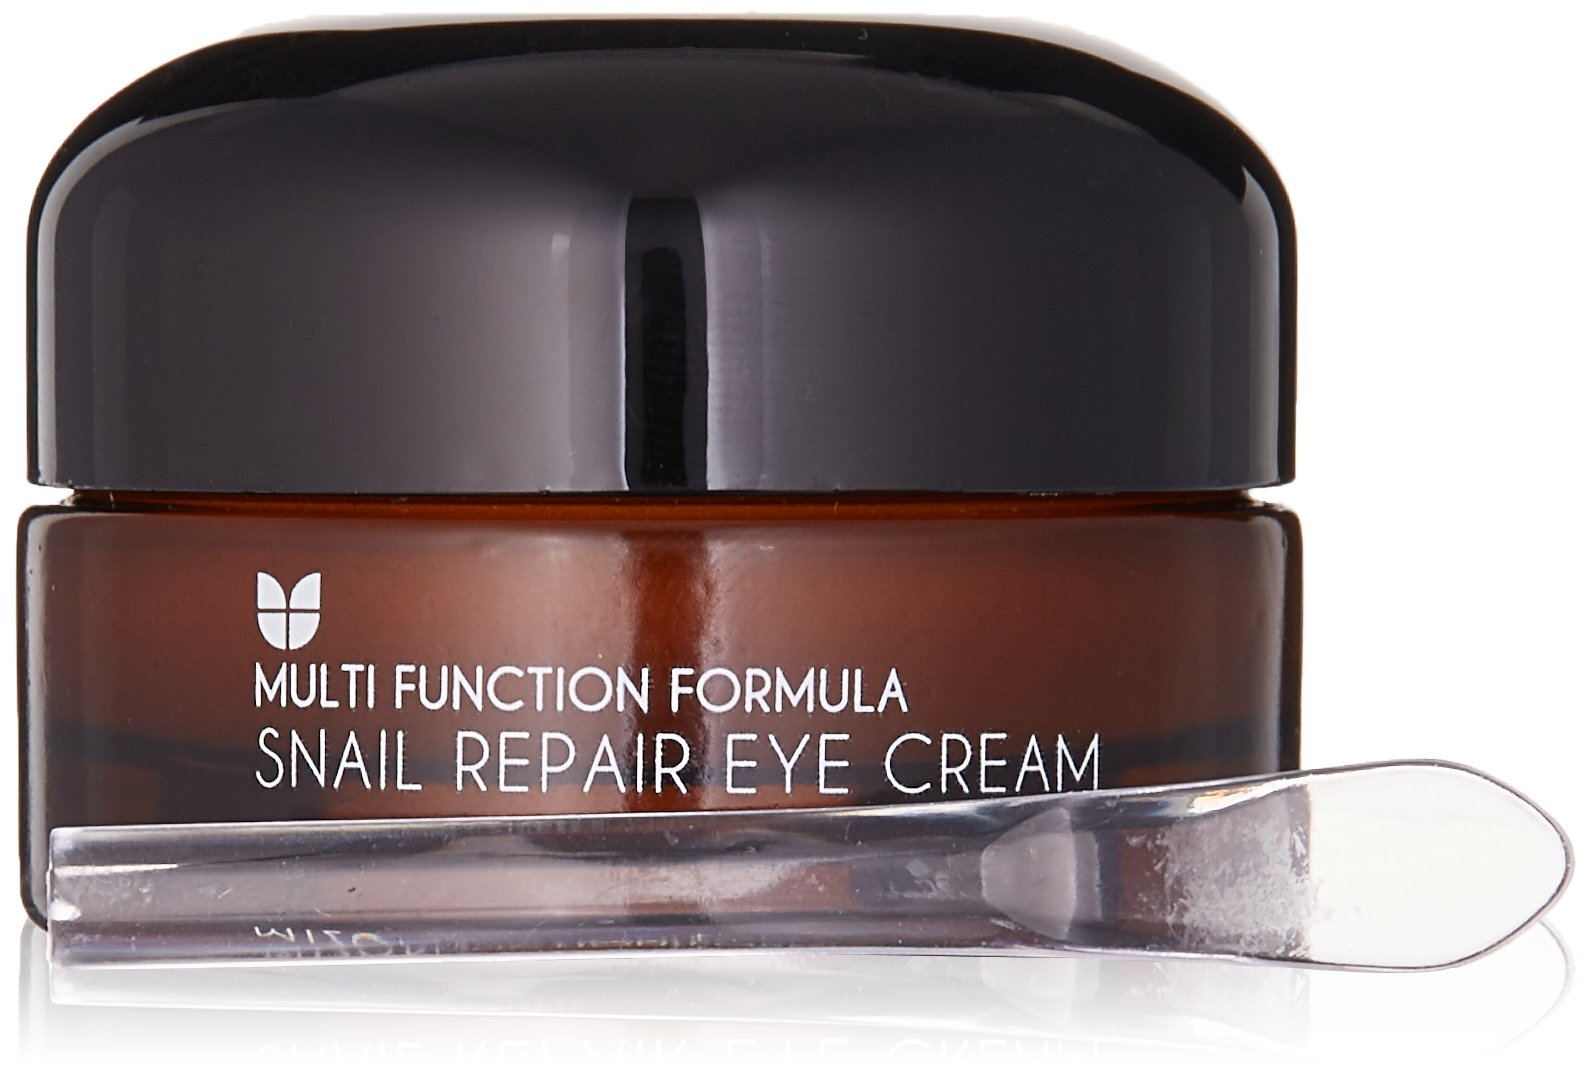 [MIZON] Snail Repair Eye Cream (0.84 fl. oz/25ml), Eye Cream for Dark Circles and Wrinkle Care